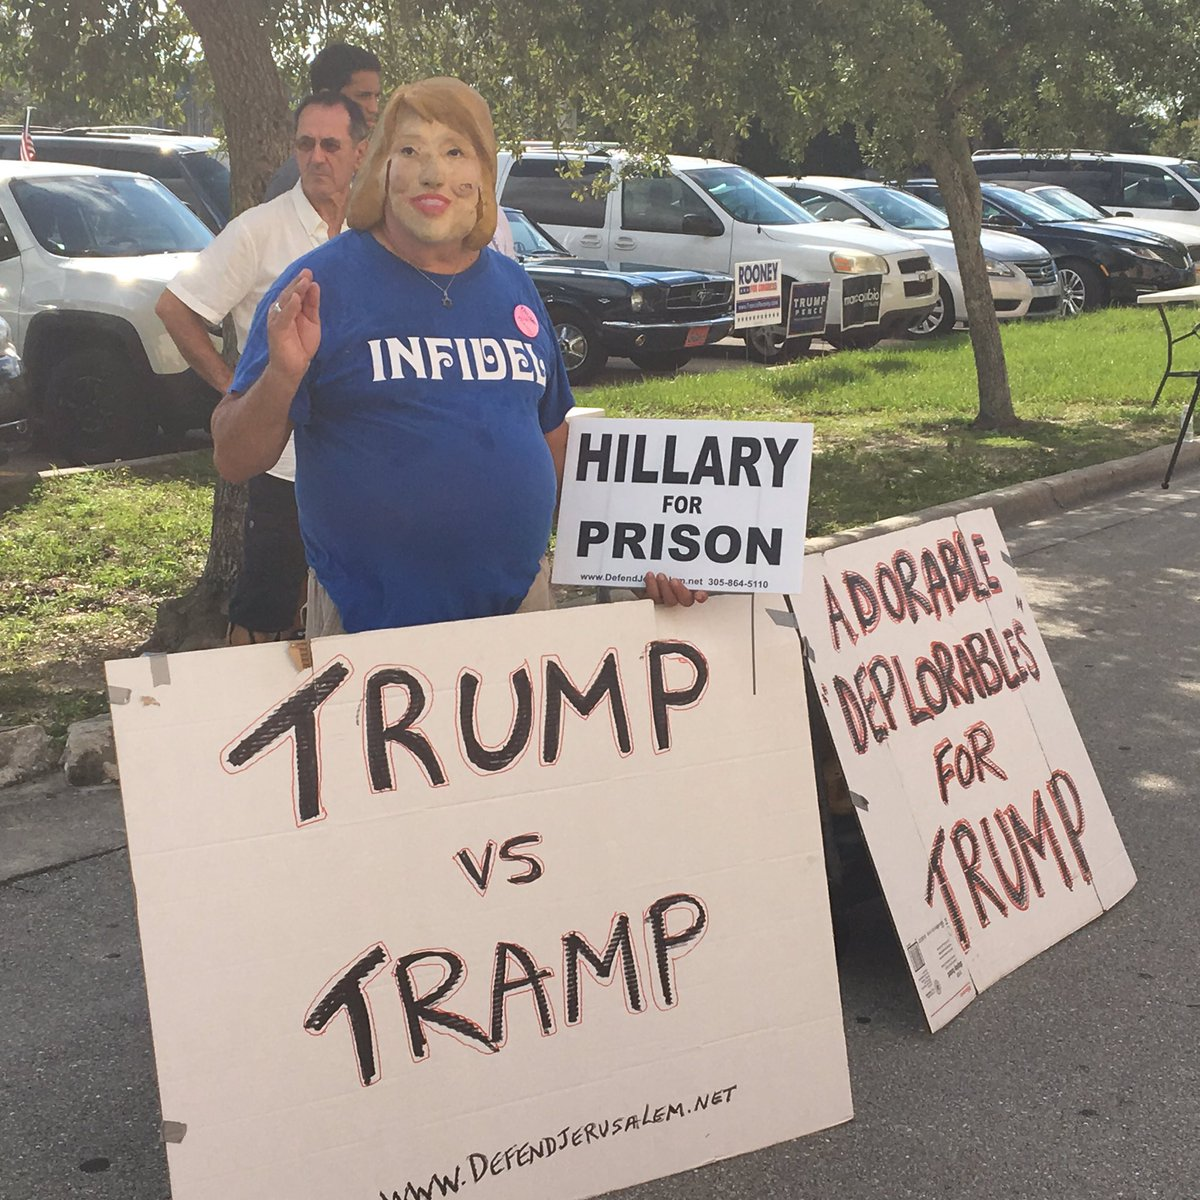 PHOTOS: Trump supporters wait outside Germain Arena in Fort Myers https://t.co/K61Z3VqzOh via @sharethis https://t.co/E78uP7yNaz